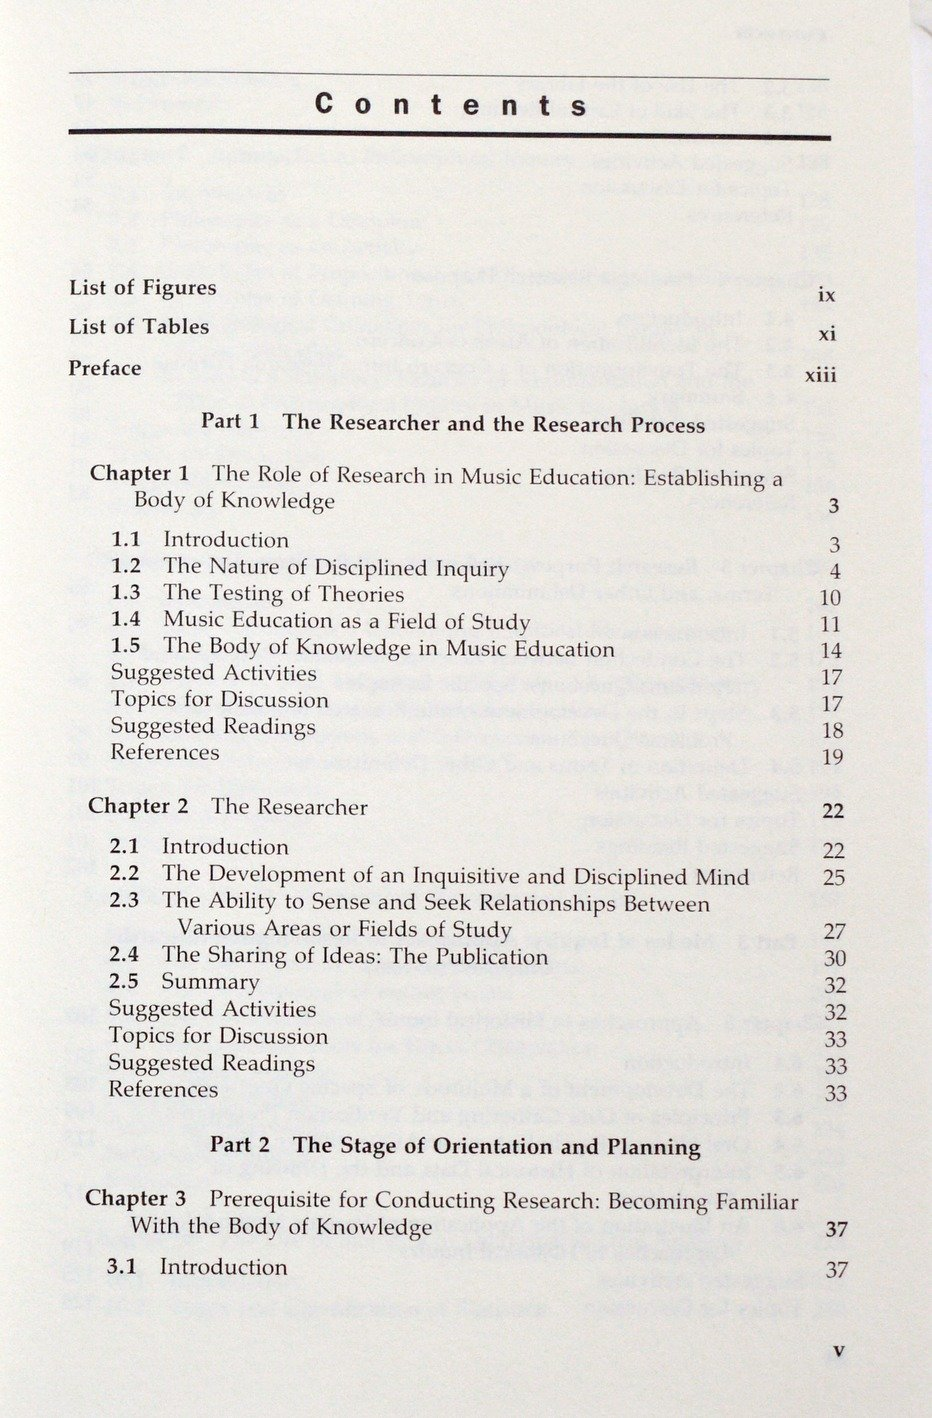 007 Research Paper 71m W90ewl Parts Of Chapter Beautiful 1 3 1-3 2 Full